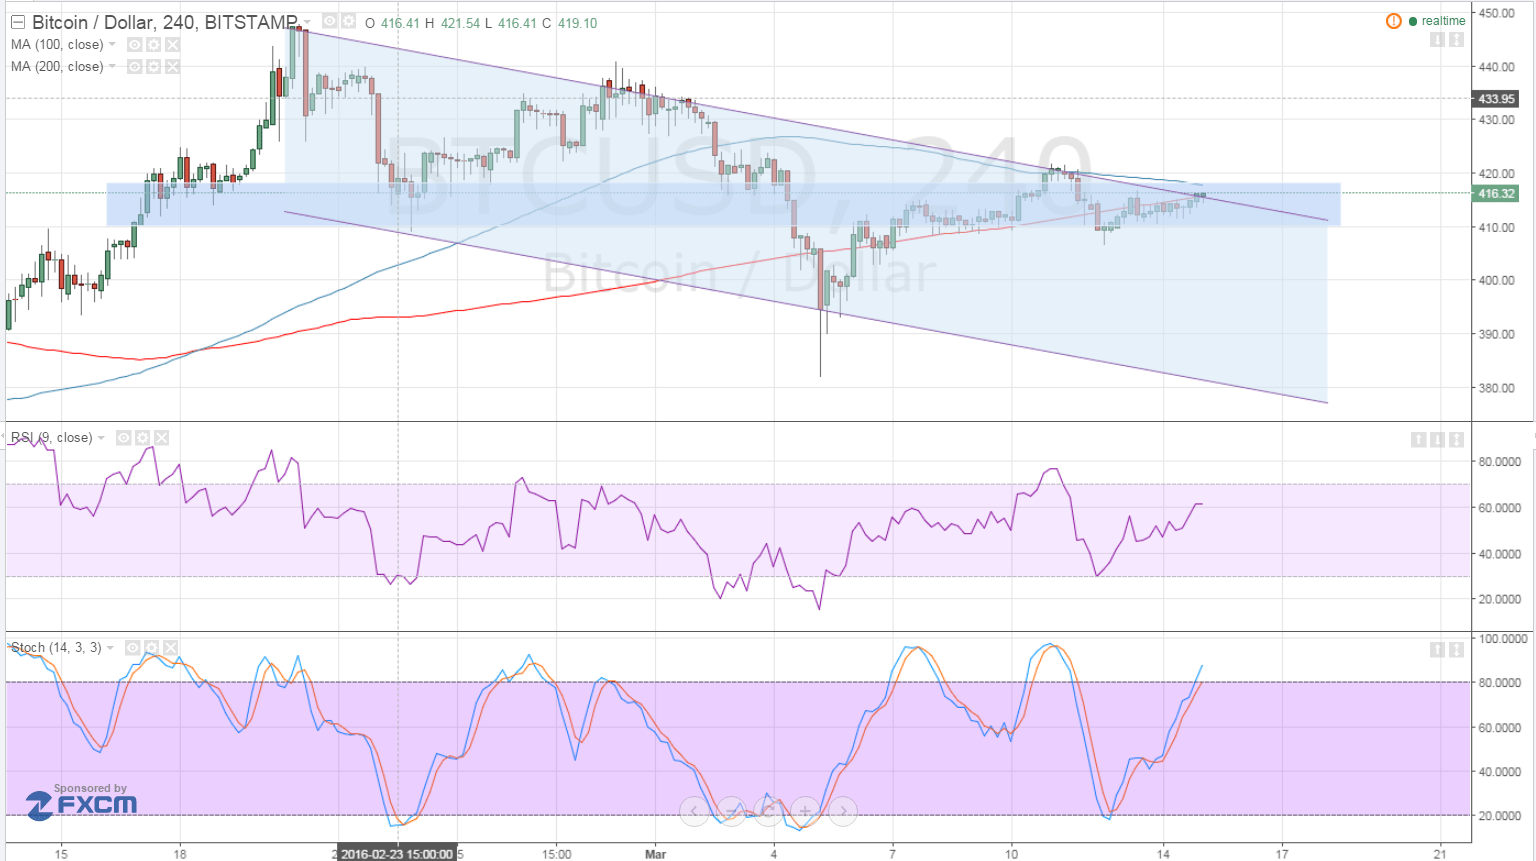 Bitcoin Price Technical Analysis for 03/15/2016 - Trying to Break Free?